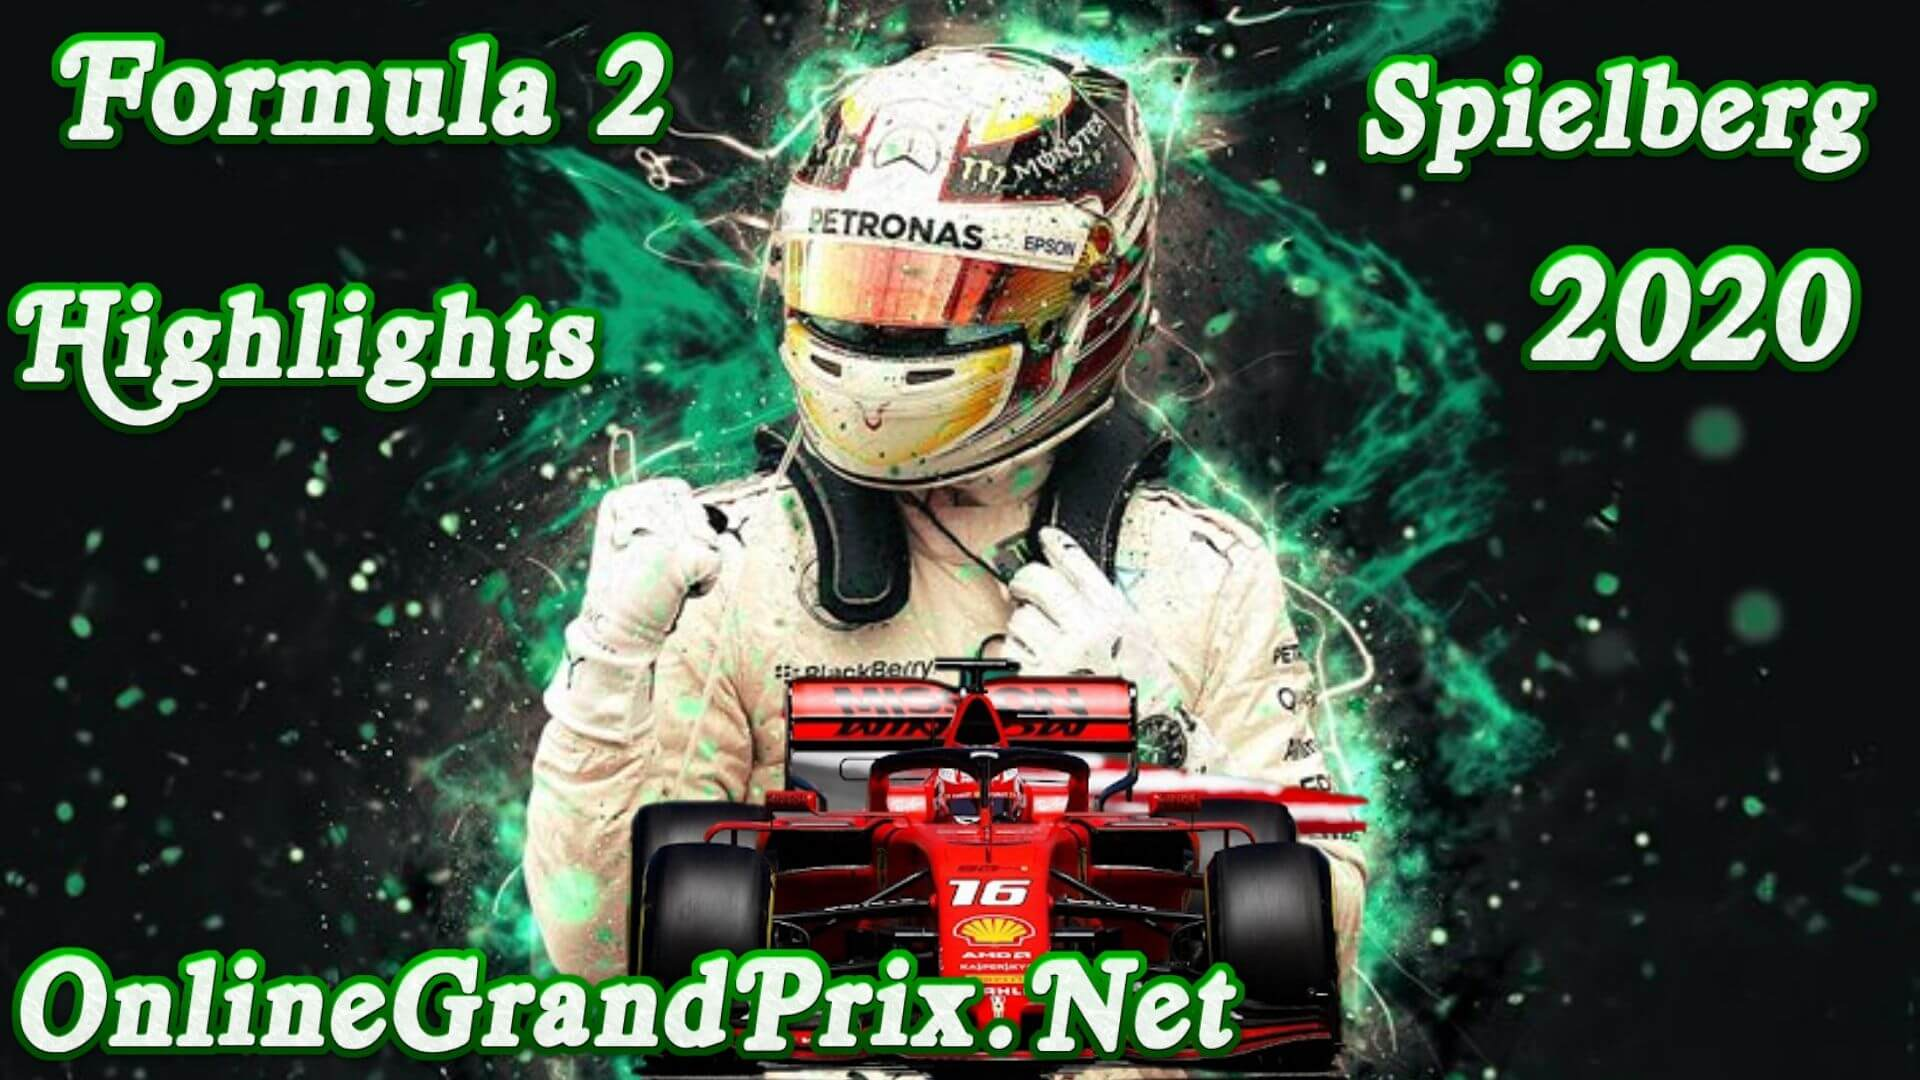 Spielberg GP Round 2 F2 Highlights 2020